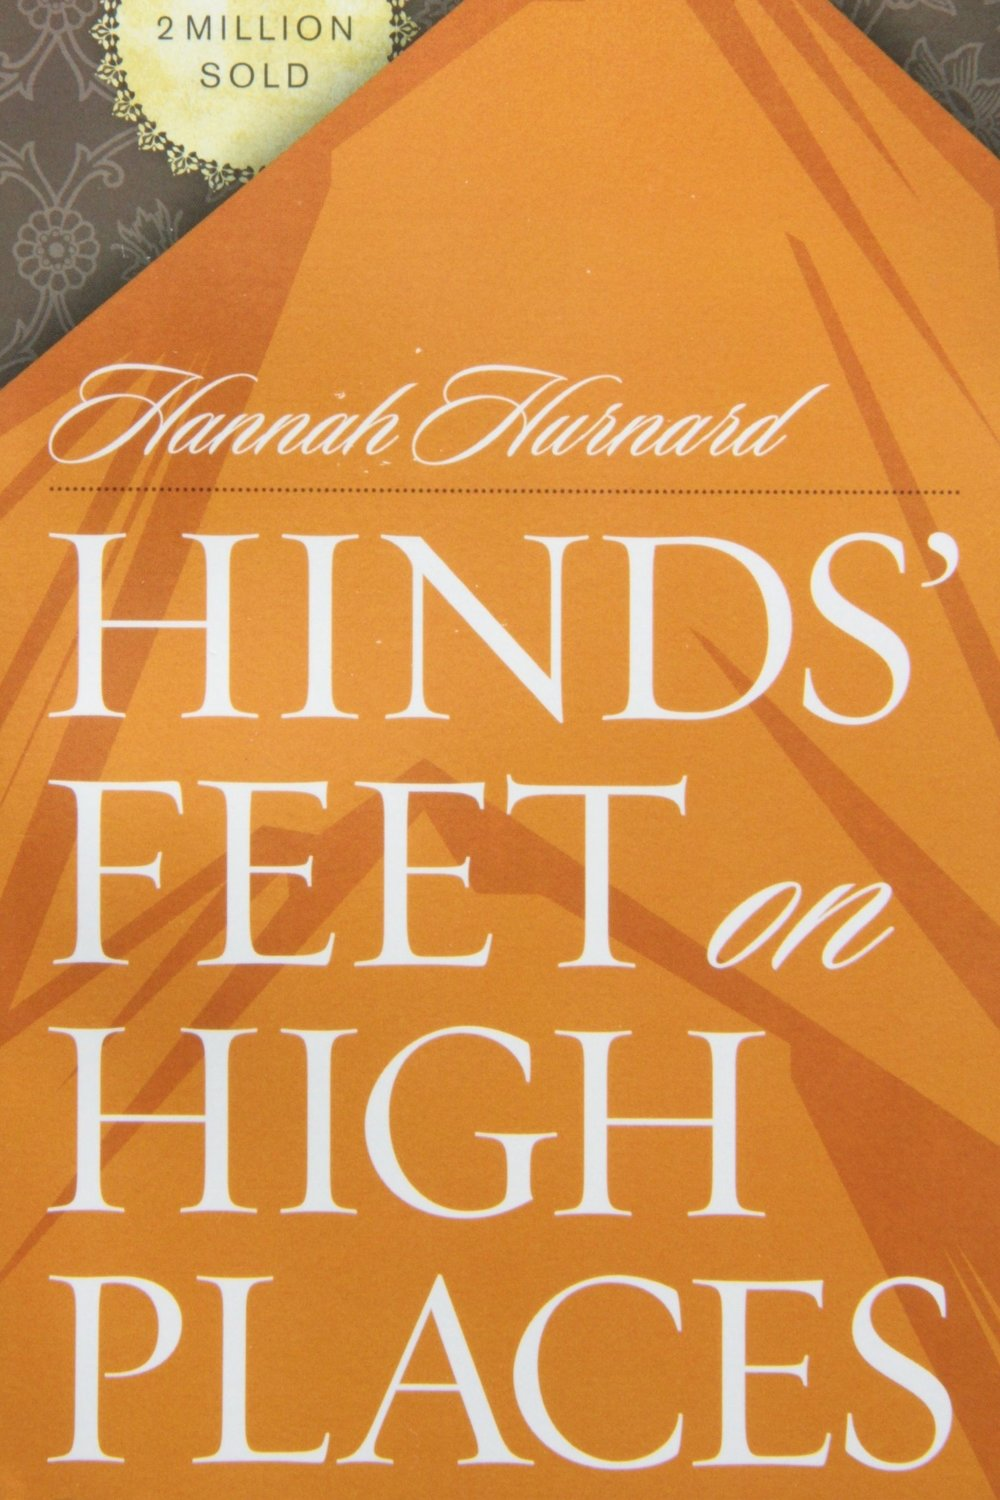 Hinds' Feet On High Places by Hannah Hurnard    A Christian fictitious allegory about Much-Afraid's journey to the high places with the help of the Shepherd. She travails through the valley of humiliation and such places with the discouragement of enemies named Craven Fear, Bitterness and Pride. This short story makes for a very quick read and I think it would be best enjoyed by a younger audience.  Recommend?  No